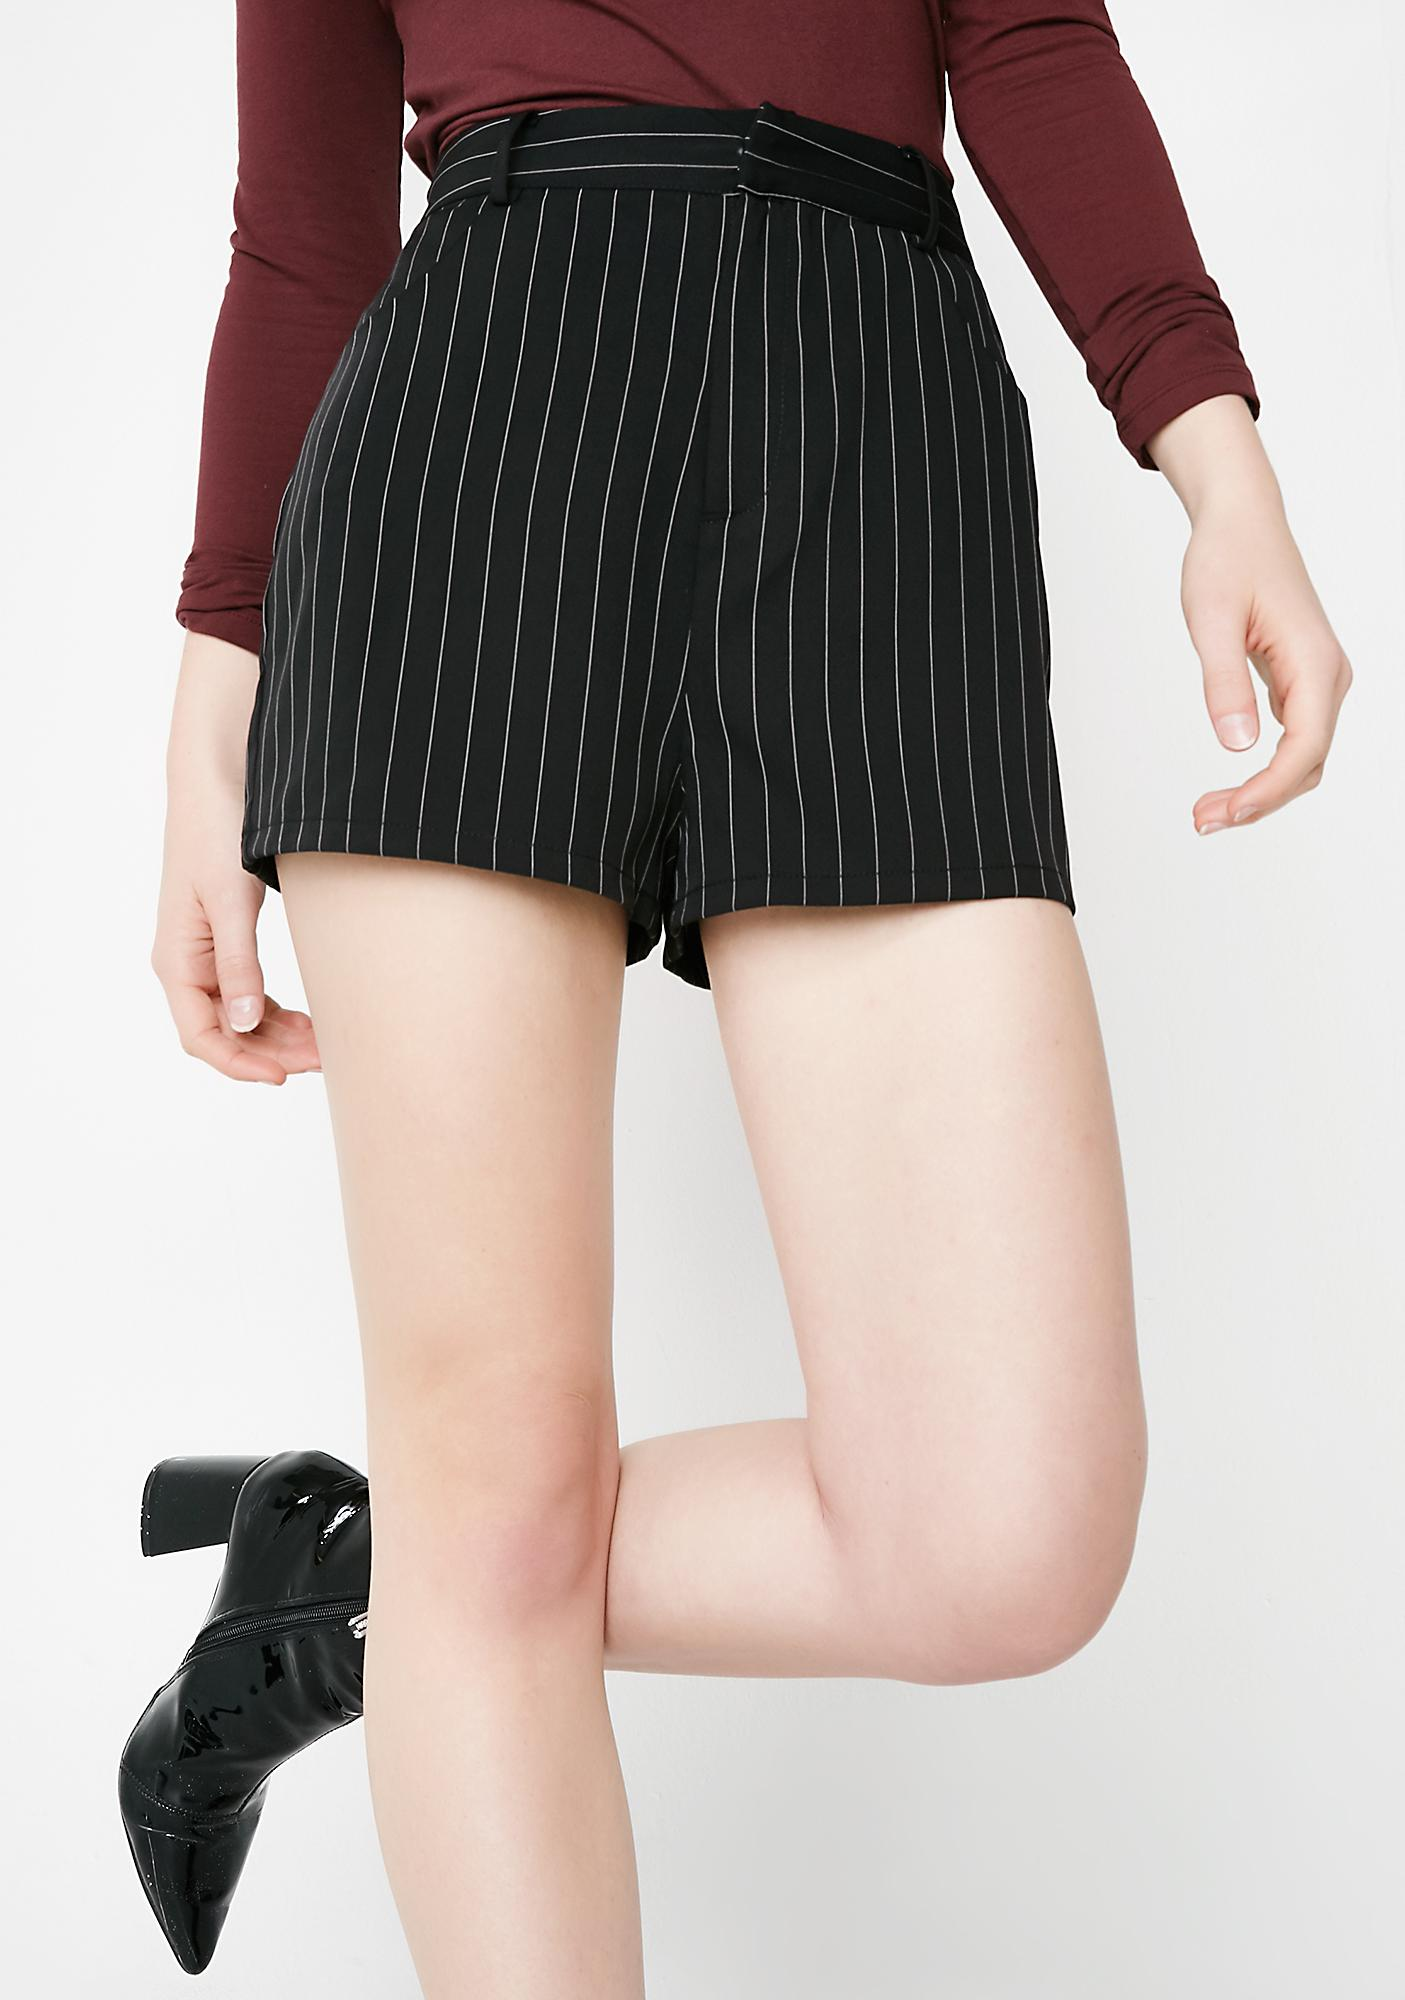 Filthy Rich Pinstripe Shorts